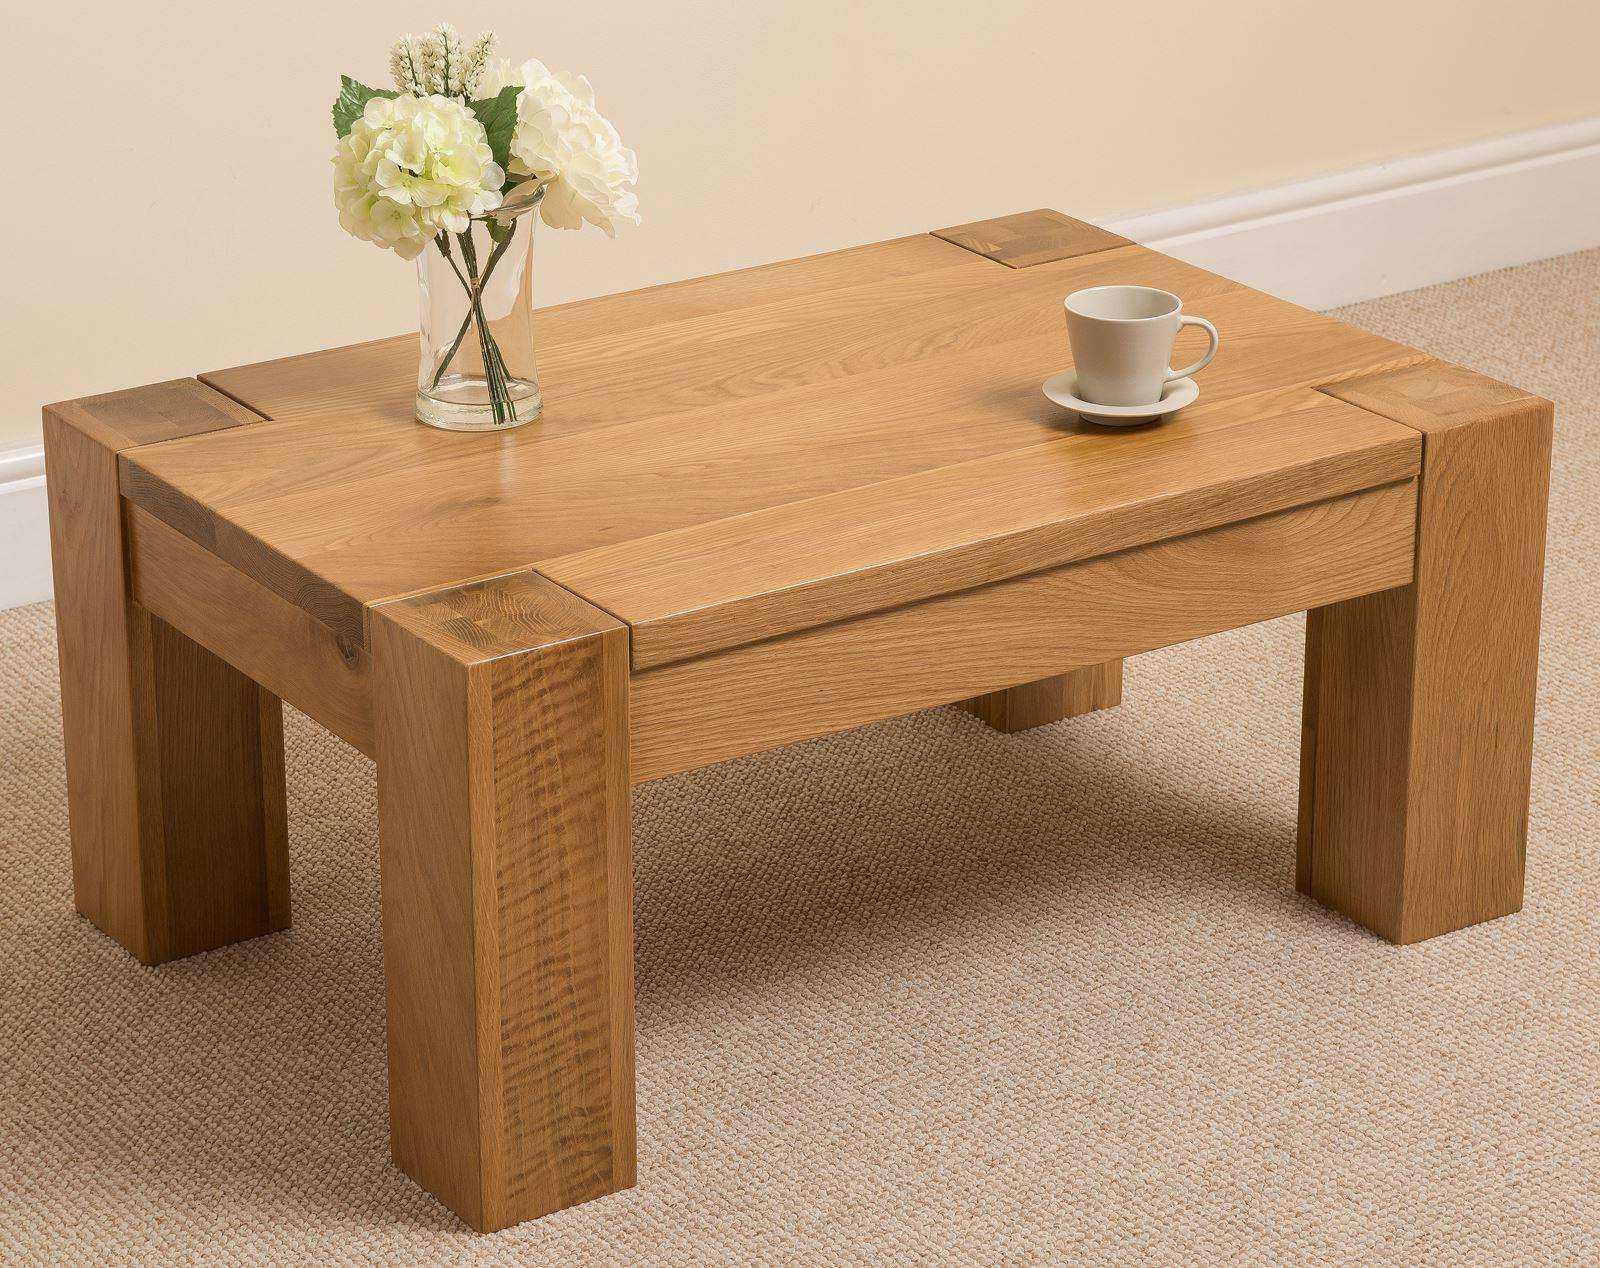 Favorite Square Oak Coffee Tables In Coffee Table : Wonderful Side Table Square Oak Coffee Table Oval (View 16 of 20)